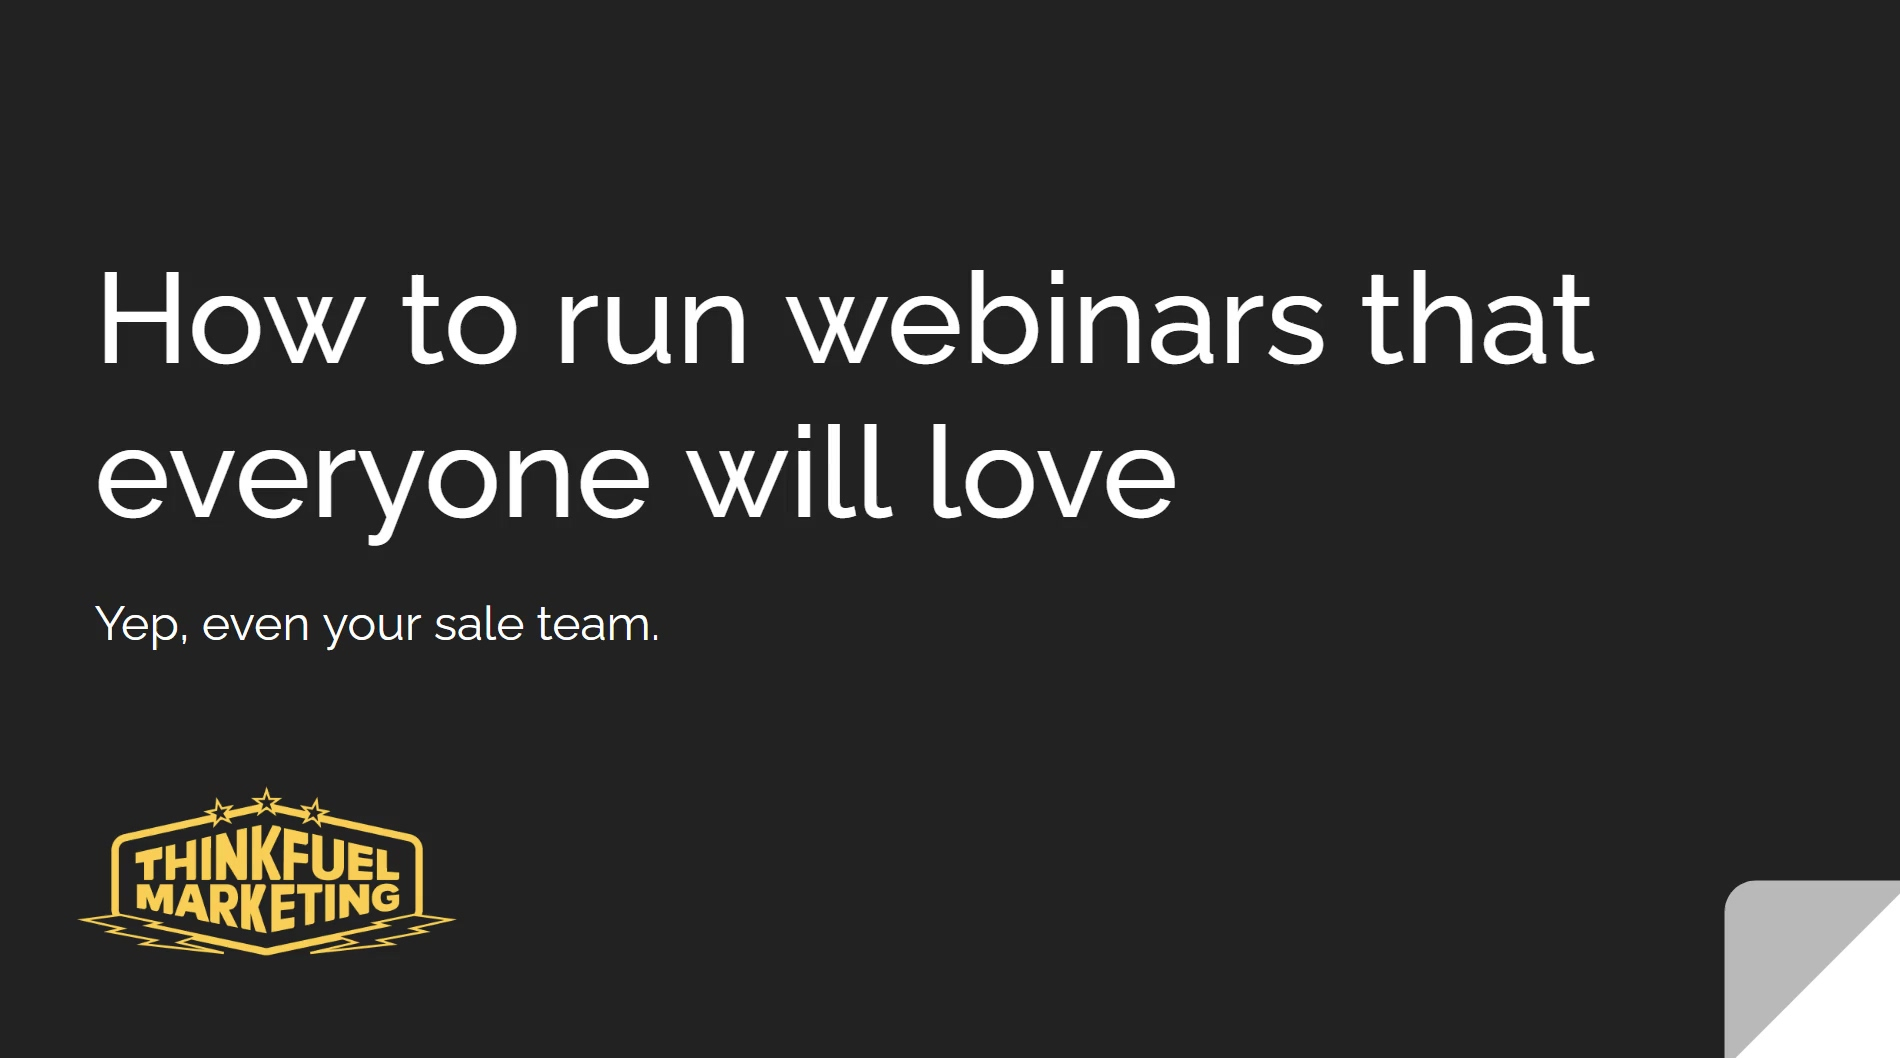 How to Plan a Webinar Everyone will Love